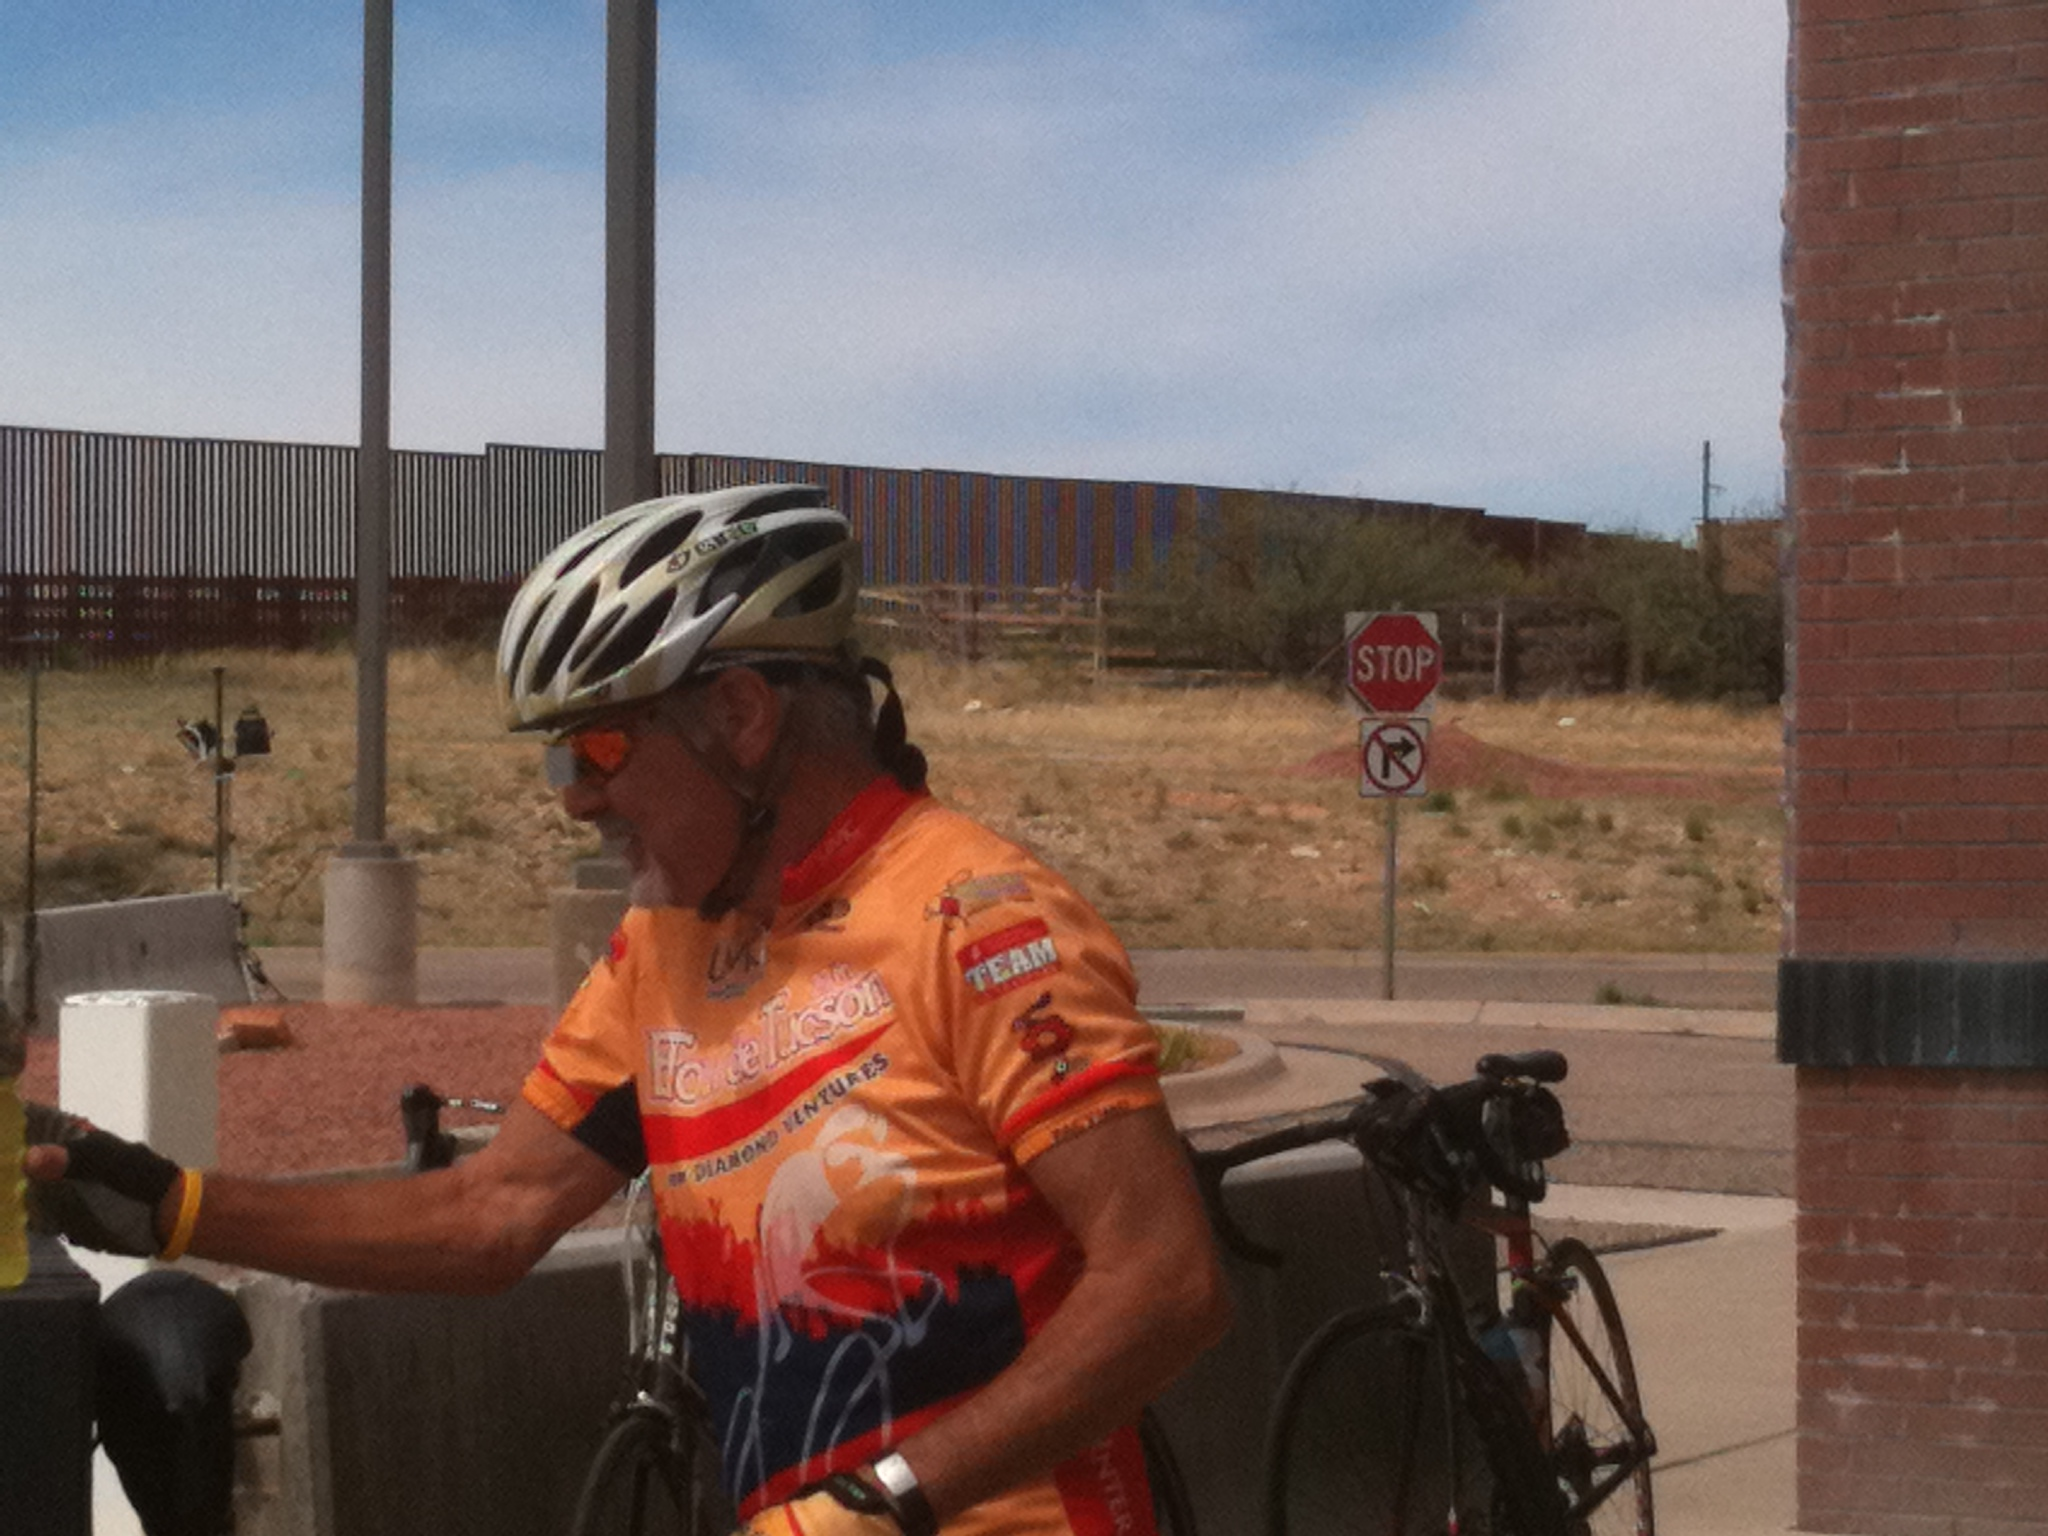 84fd1c0f9 Tim from Kalamazoo looks fierce in his Froot Loops Jersey at the border.  Apr10 006. Larry takes a break with the border fence behind him.